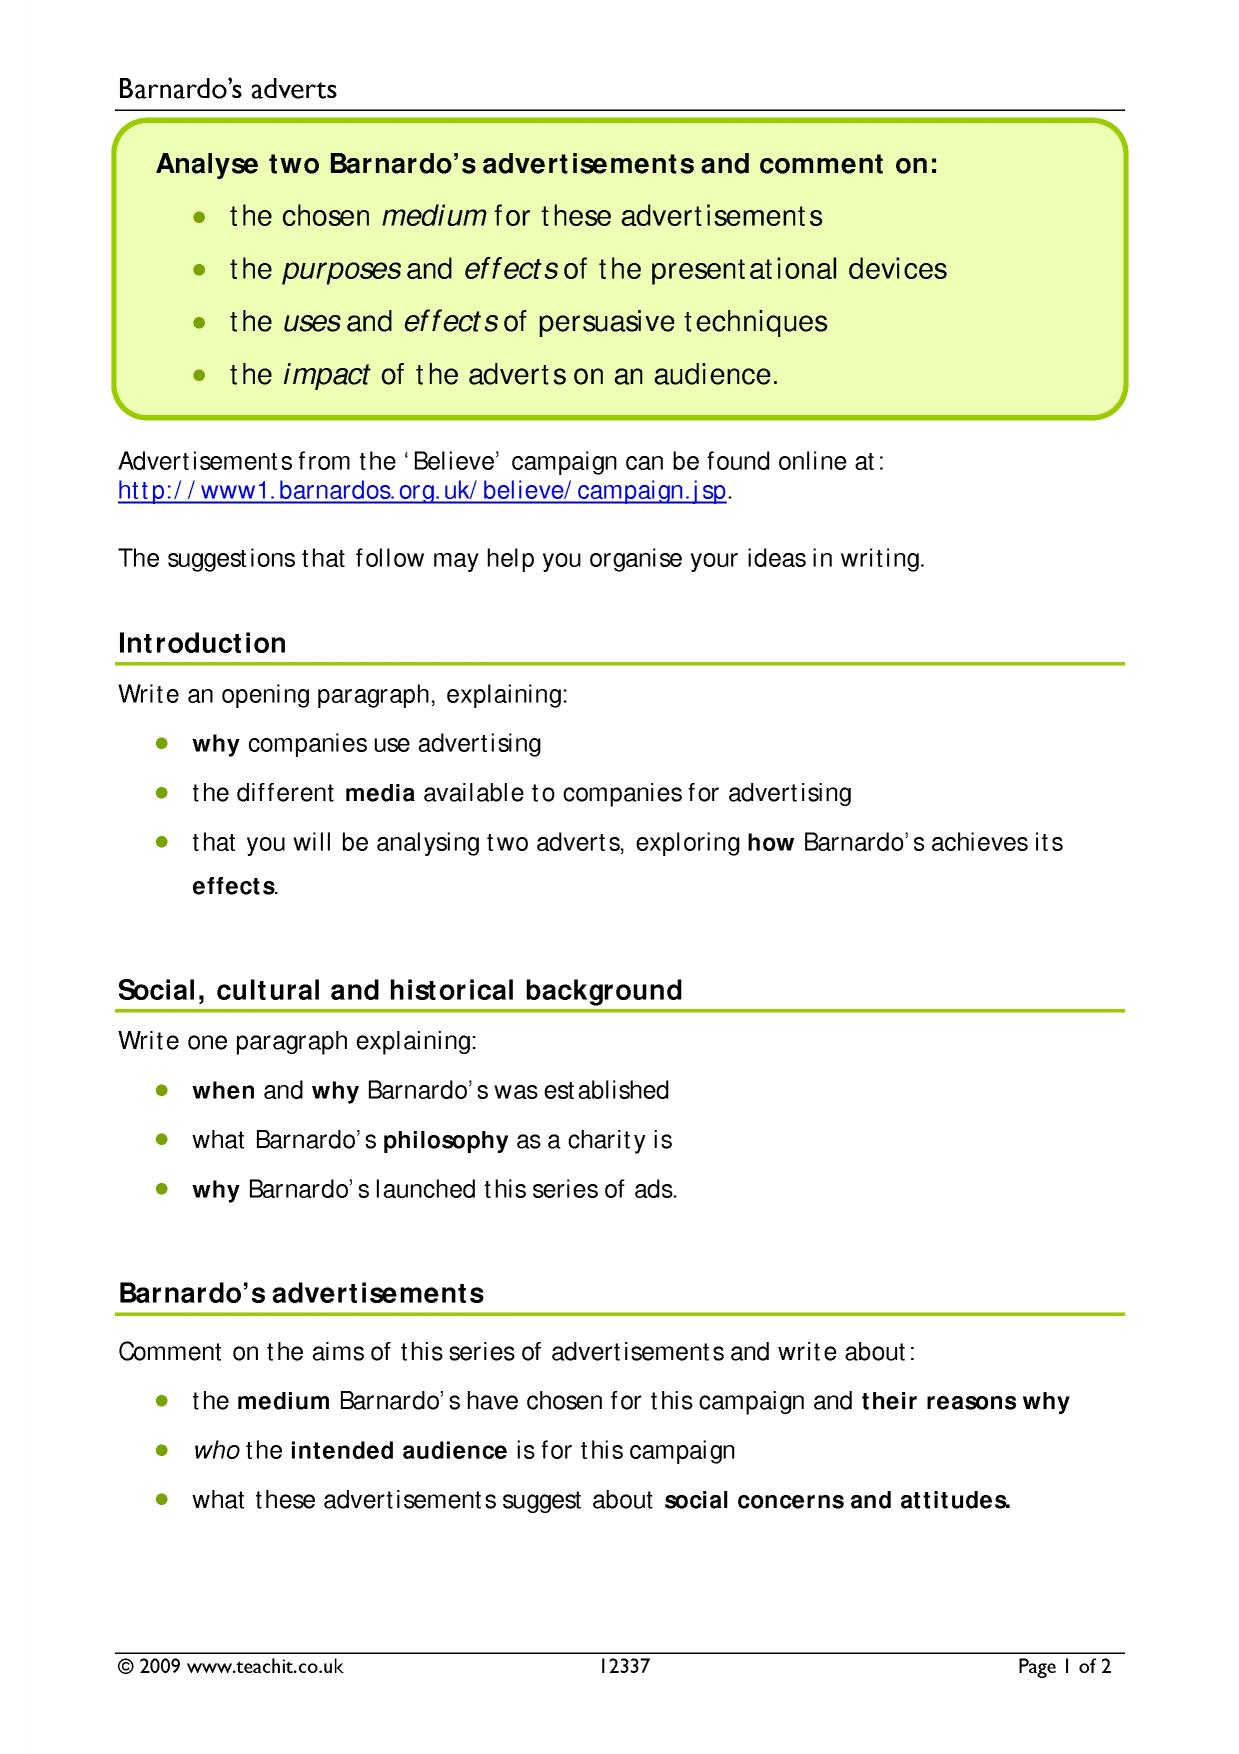 aqa english literature coursework cover sheet • english language • english literature your preparation will be the same as for coursework what are the deadlines for controlled assessment task.